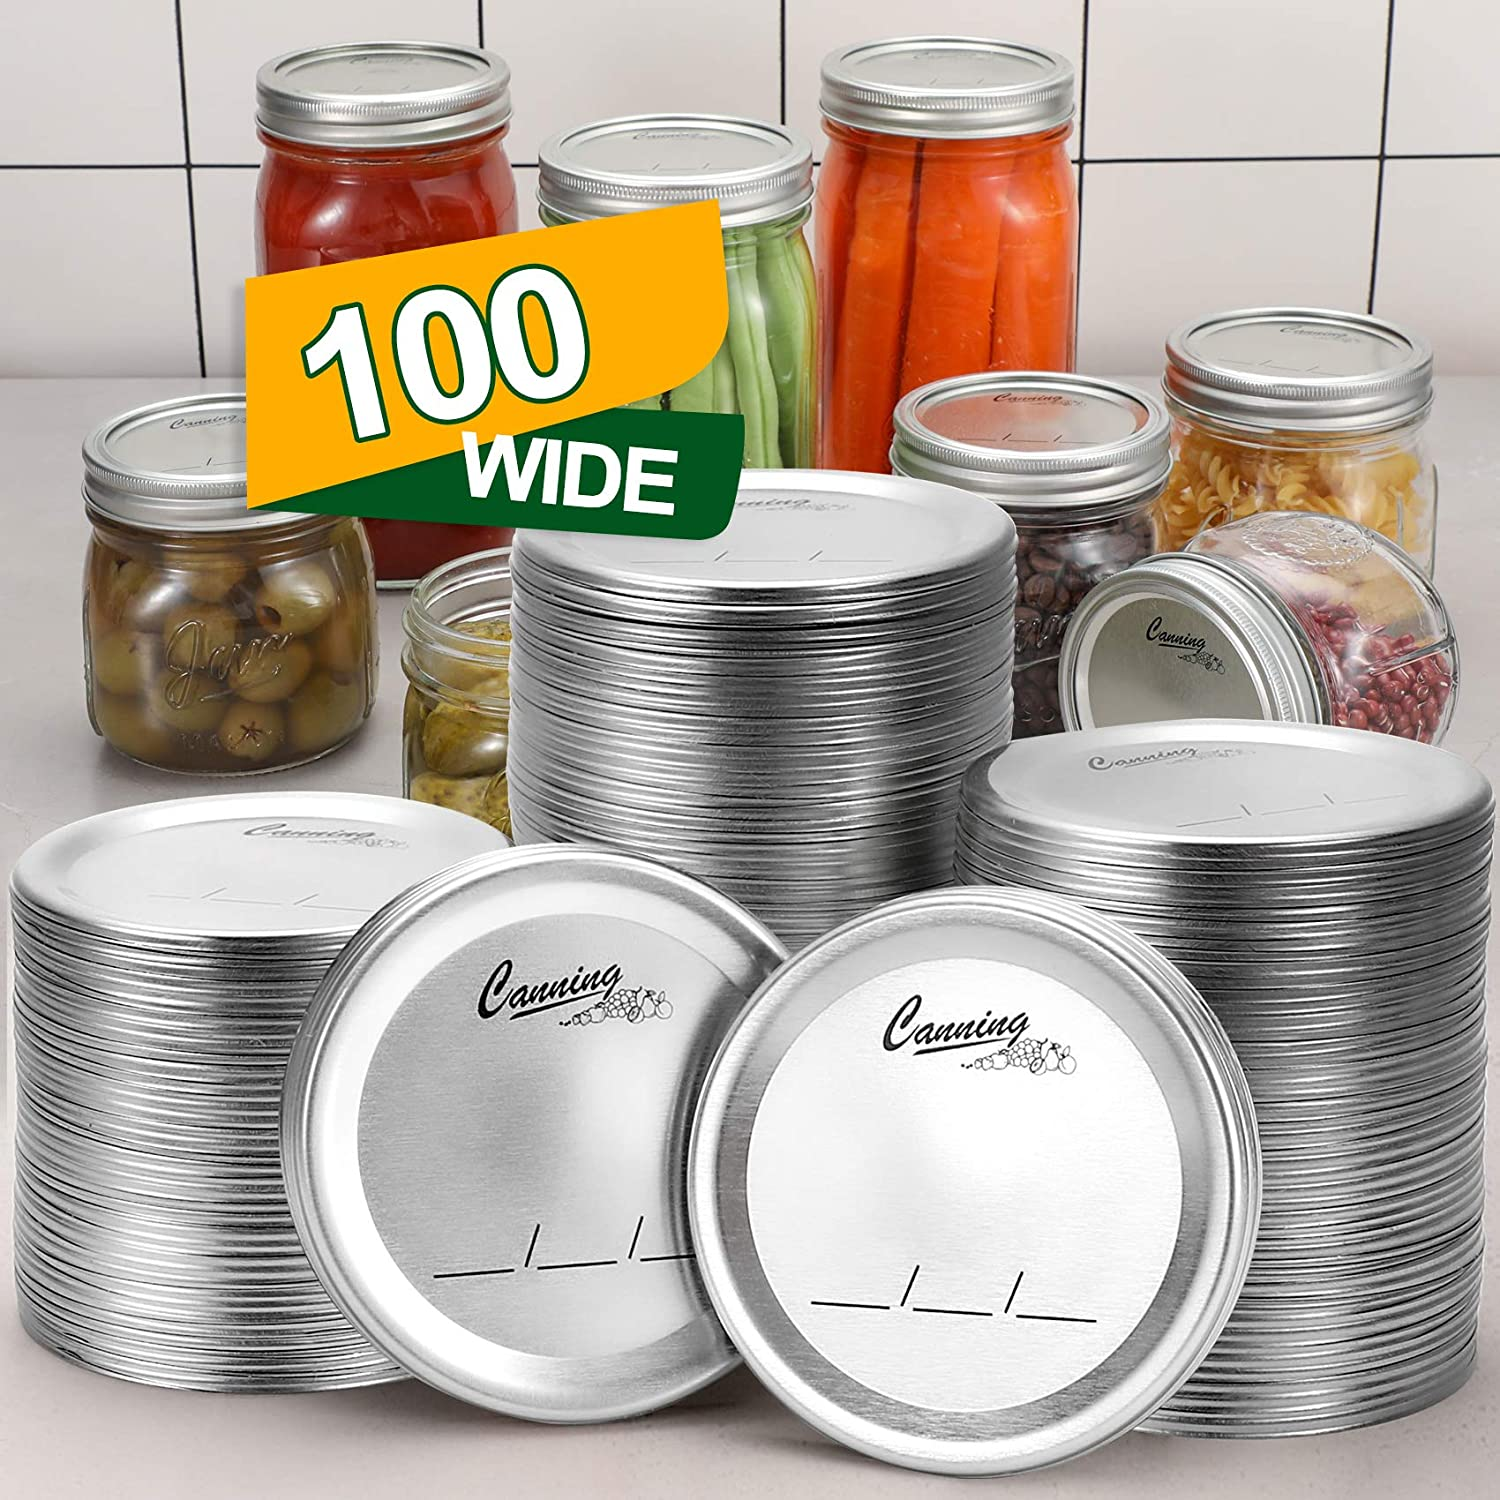 100-Count, [WIDE Mouth] Canning Lids for Ball, Kerr Jars - Split-Type Metal Mason Jar Lids for Canning - Food Grade Material, 100% Fit & Airtight for Wide Mouth Jars - PATENT PENDING